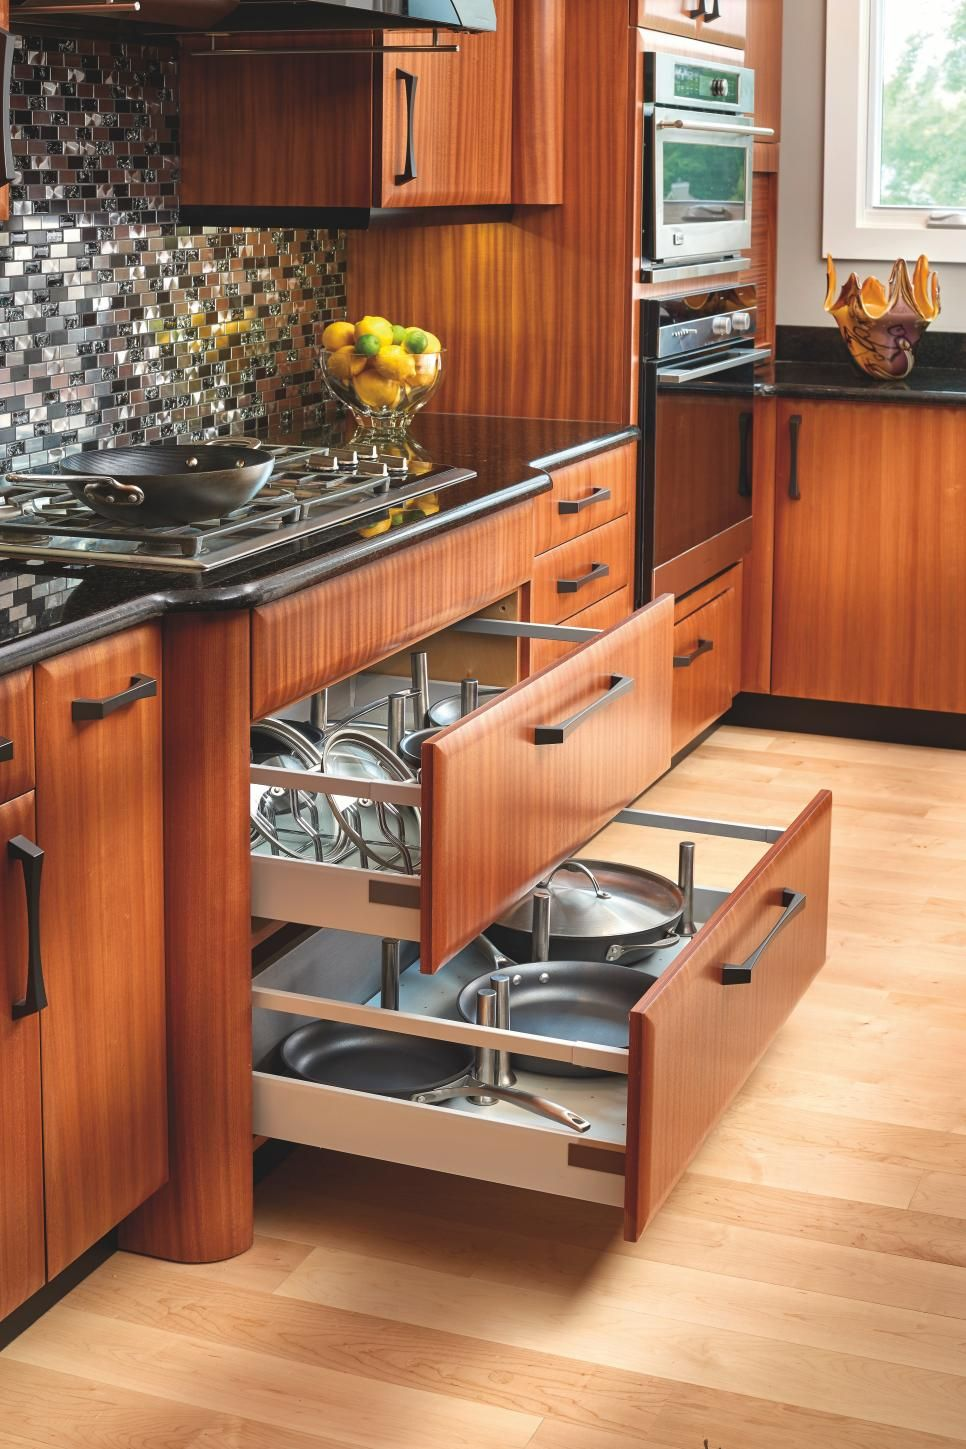 get tips and ideas for incorporating storage pull outs in your kitchen at hgtv com kitchen on kitchen organization cabinet id=40434